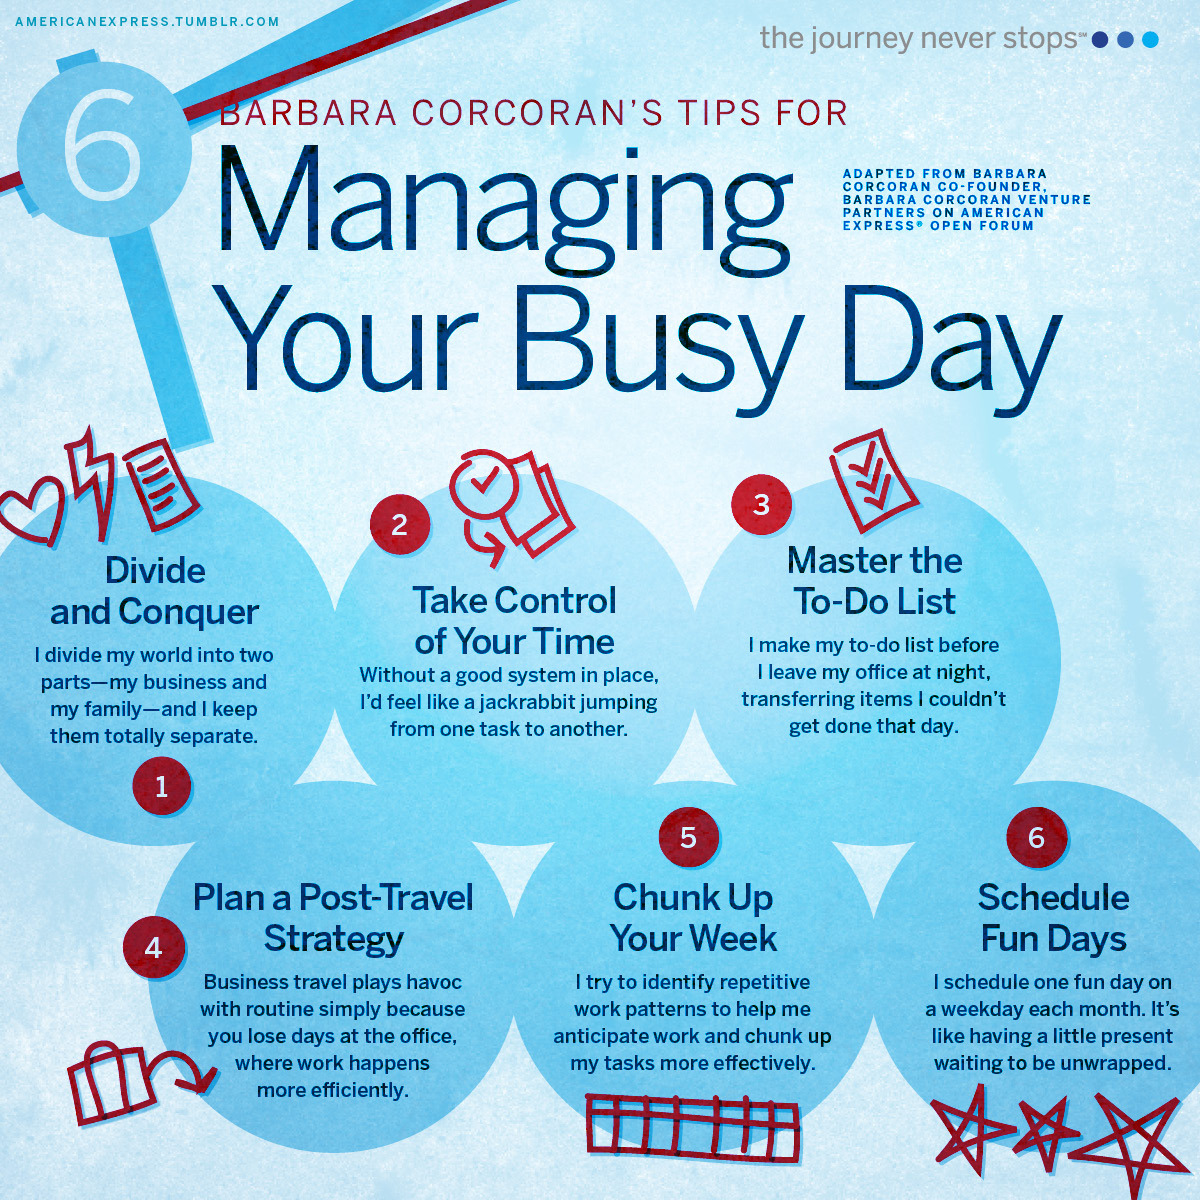 6 Tips For Managing Your Busy Day